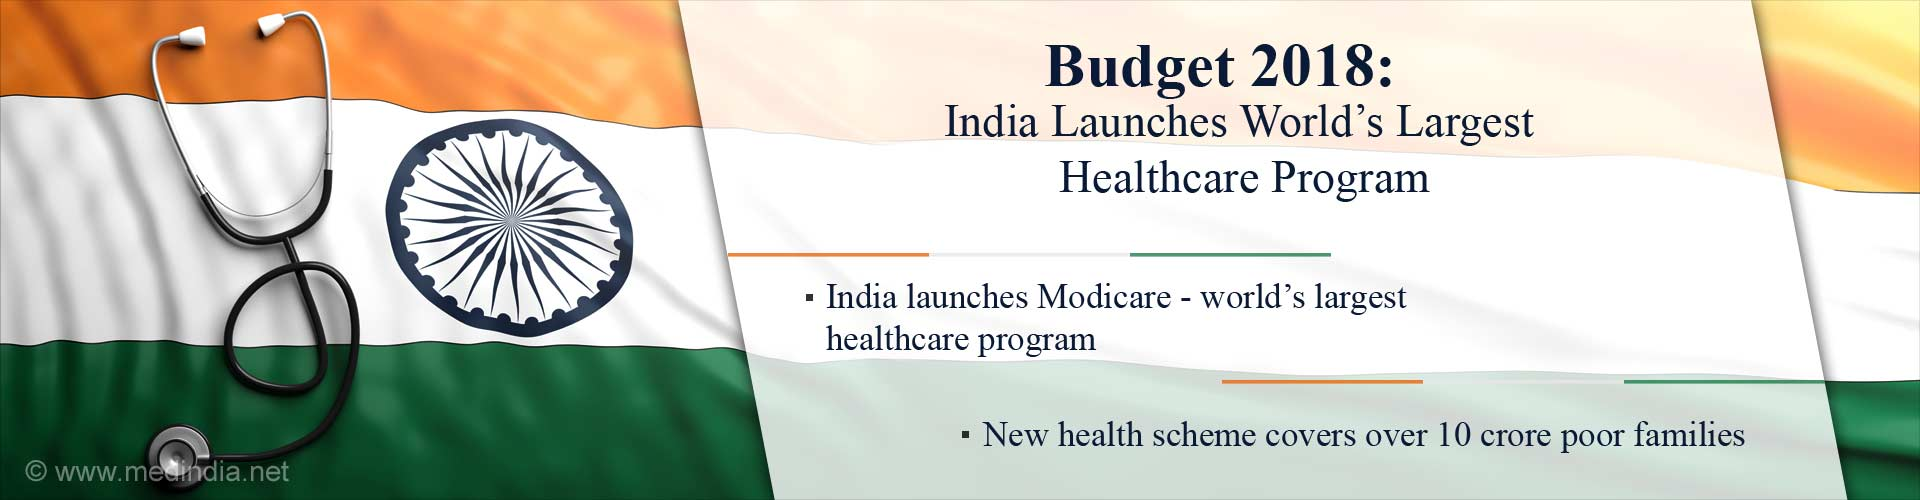 budget 2018: India Launches World''s Largest Healthcare Program